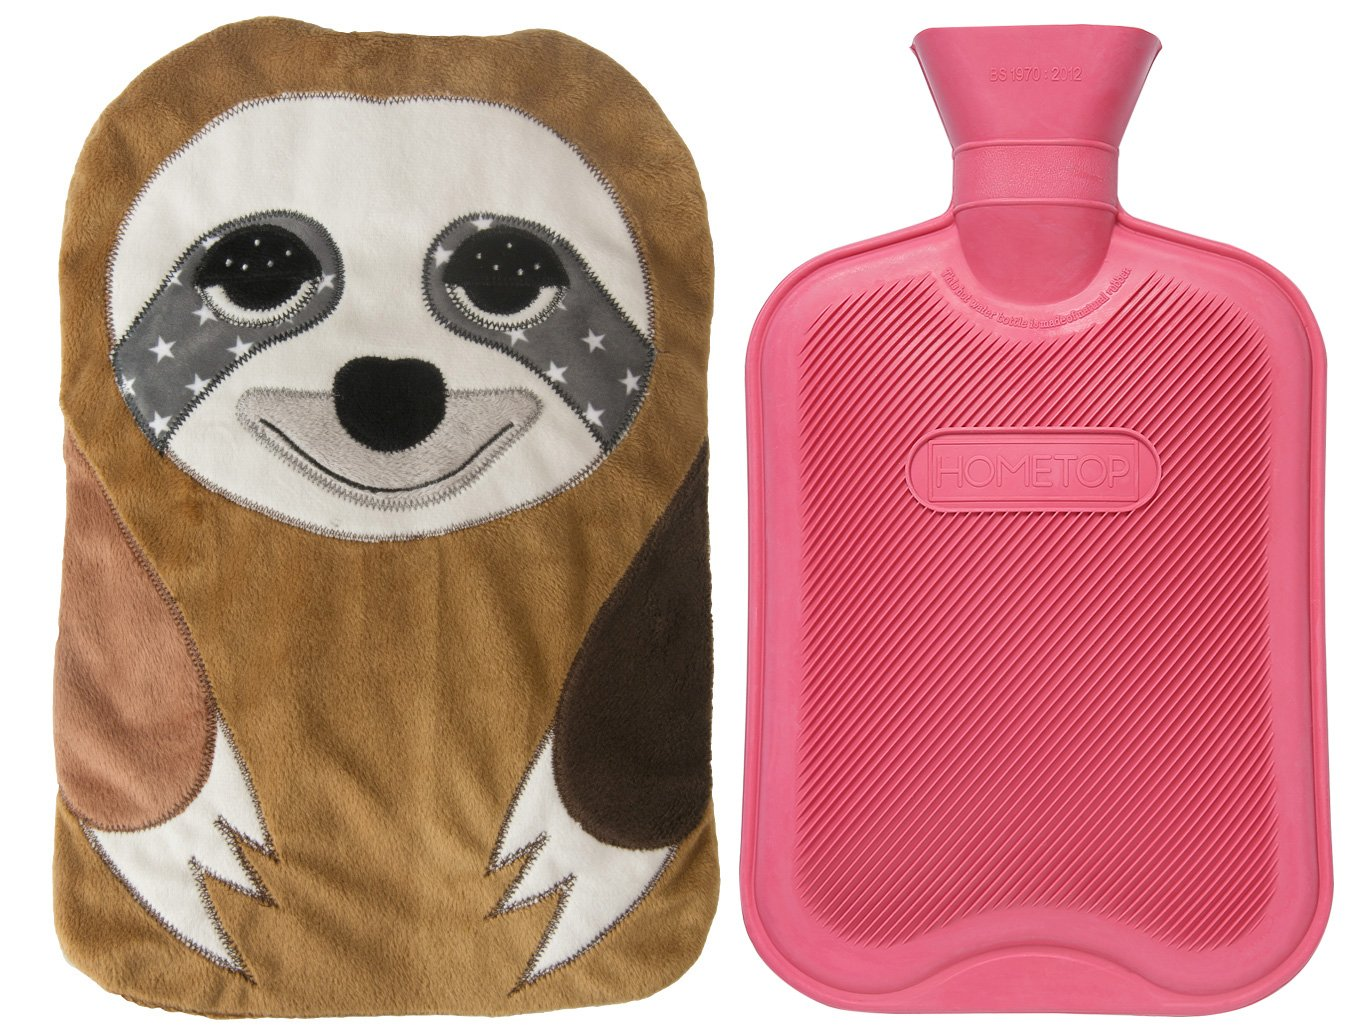 HomeTop Classic Rubber Hot Water Bottle with Cute Fleece Sloth Cover for Cramps and Pain Relief (Mr. Sloth/Red)